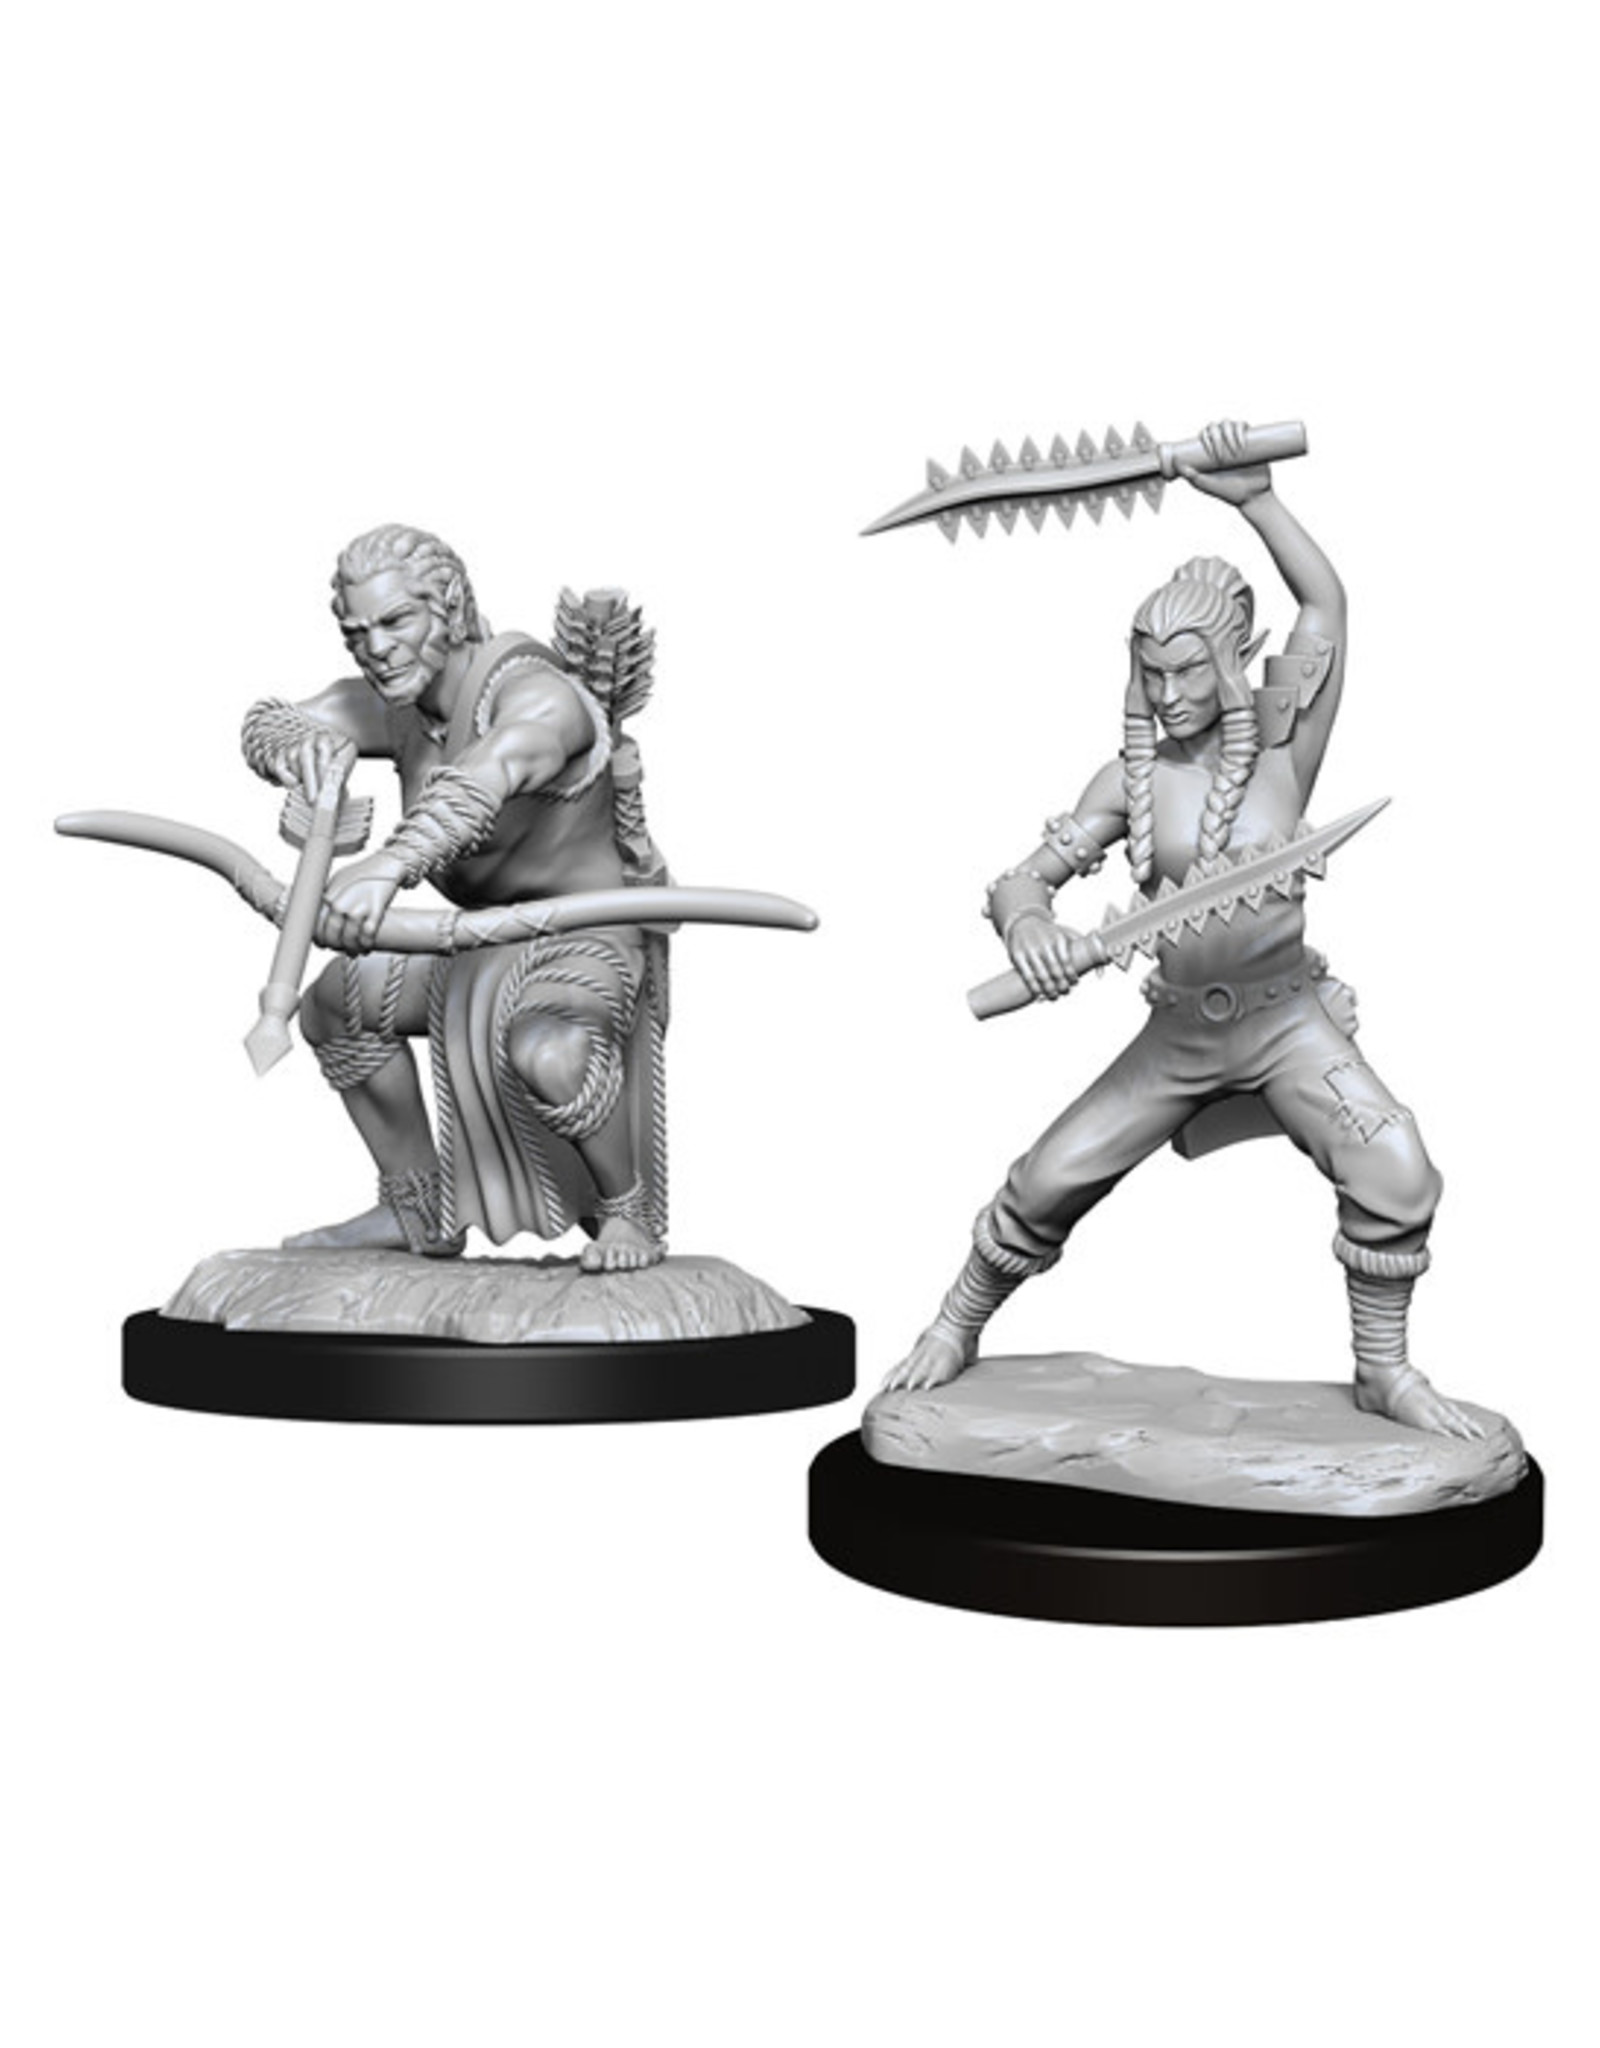 Dungeons & Dragons Dungeons & Dragons: Nolzur's - Shifter Wildhunt Male Ranger